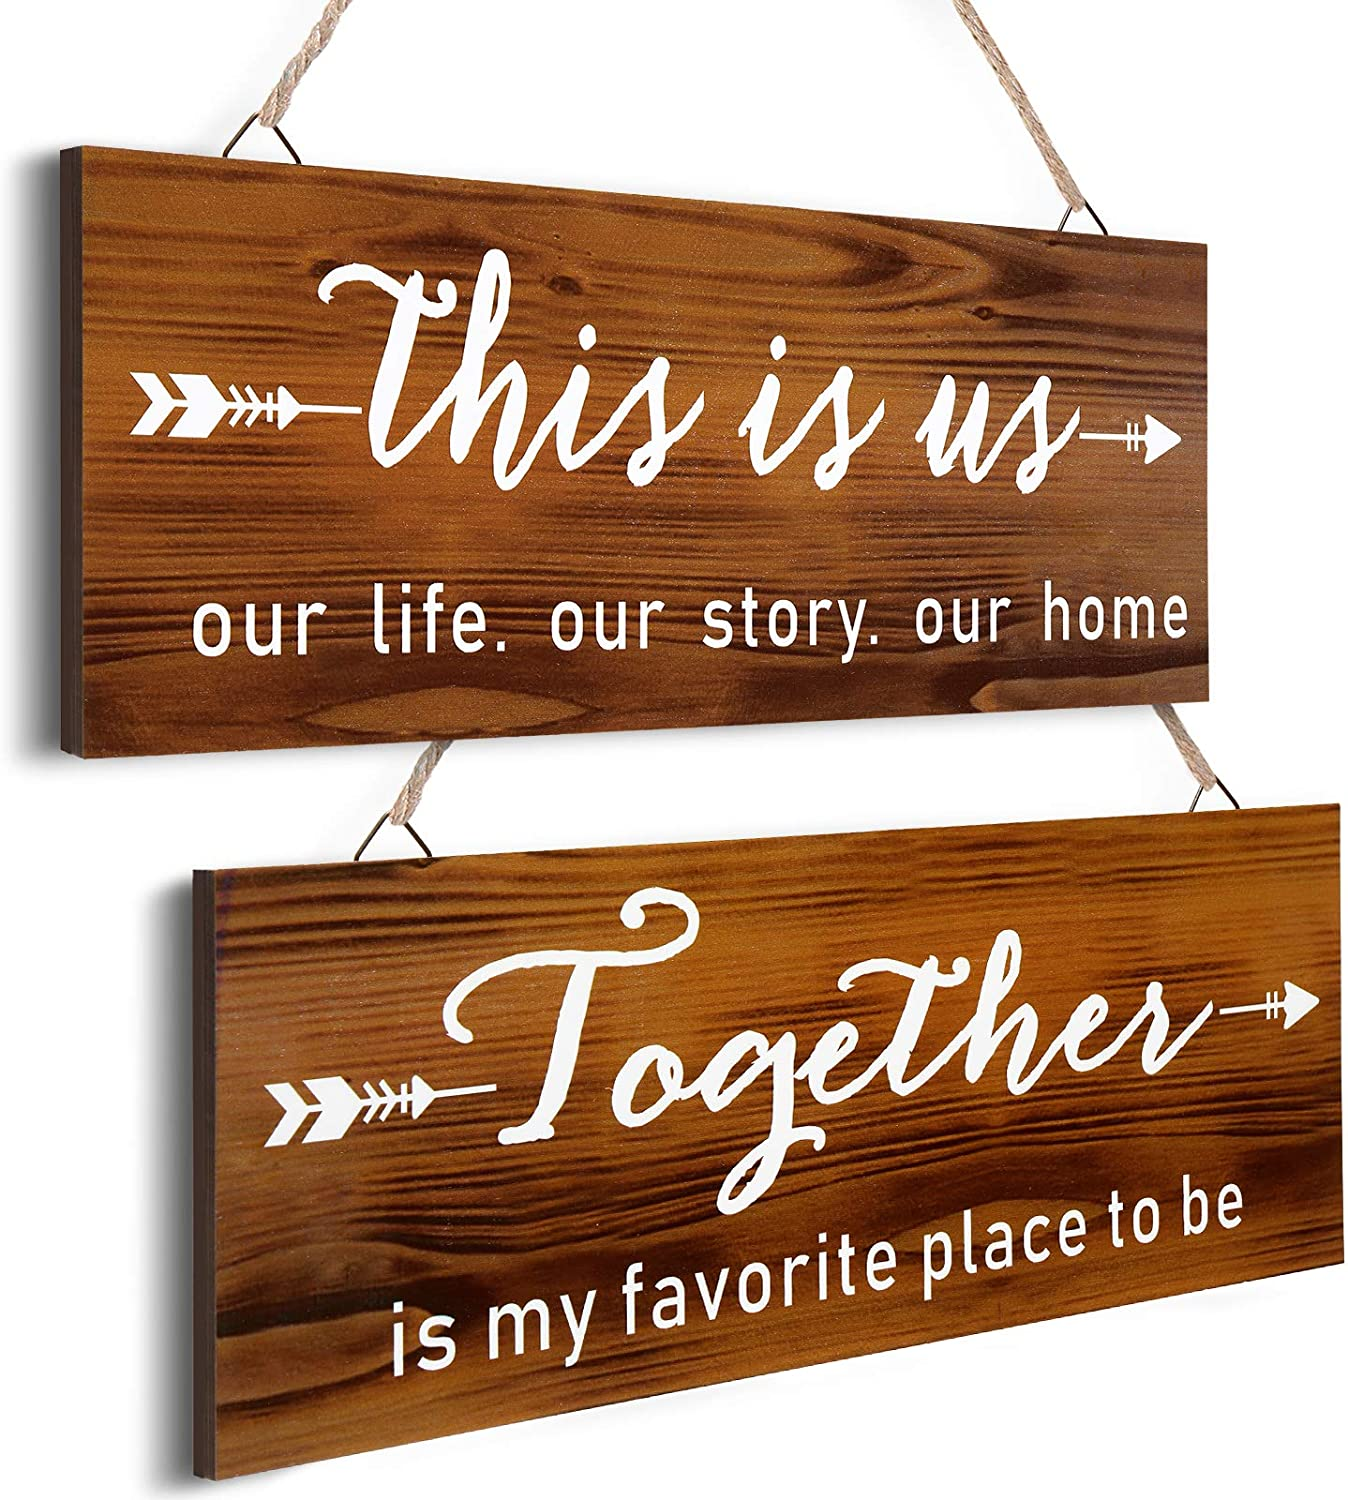 2 Pieces This is us Rustic Wood Home Sign Together Family Wood Sign Rustic Home Wall Decor Farmhouse Entryway Signs Living Room Brown Vintage Hanging Signs 13.7 x 5.1 Inch